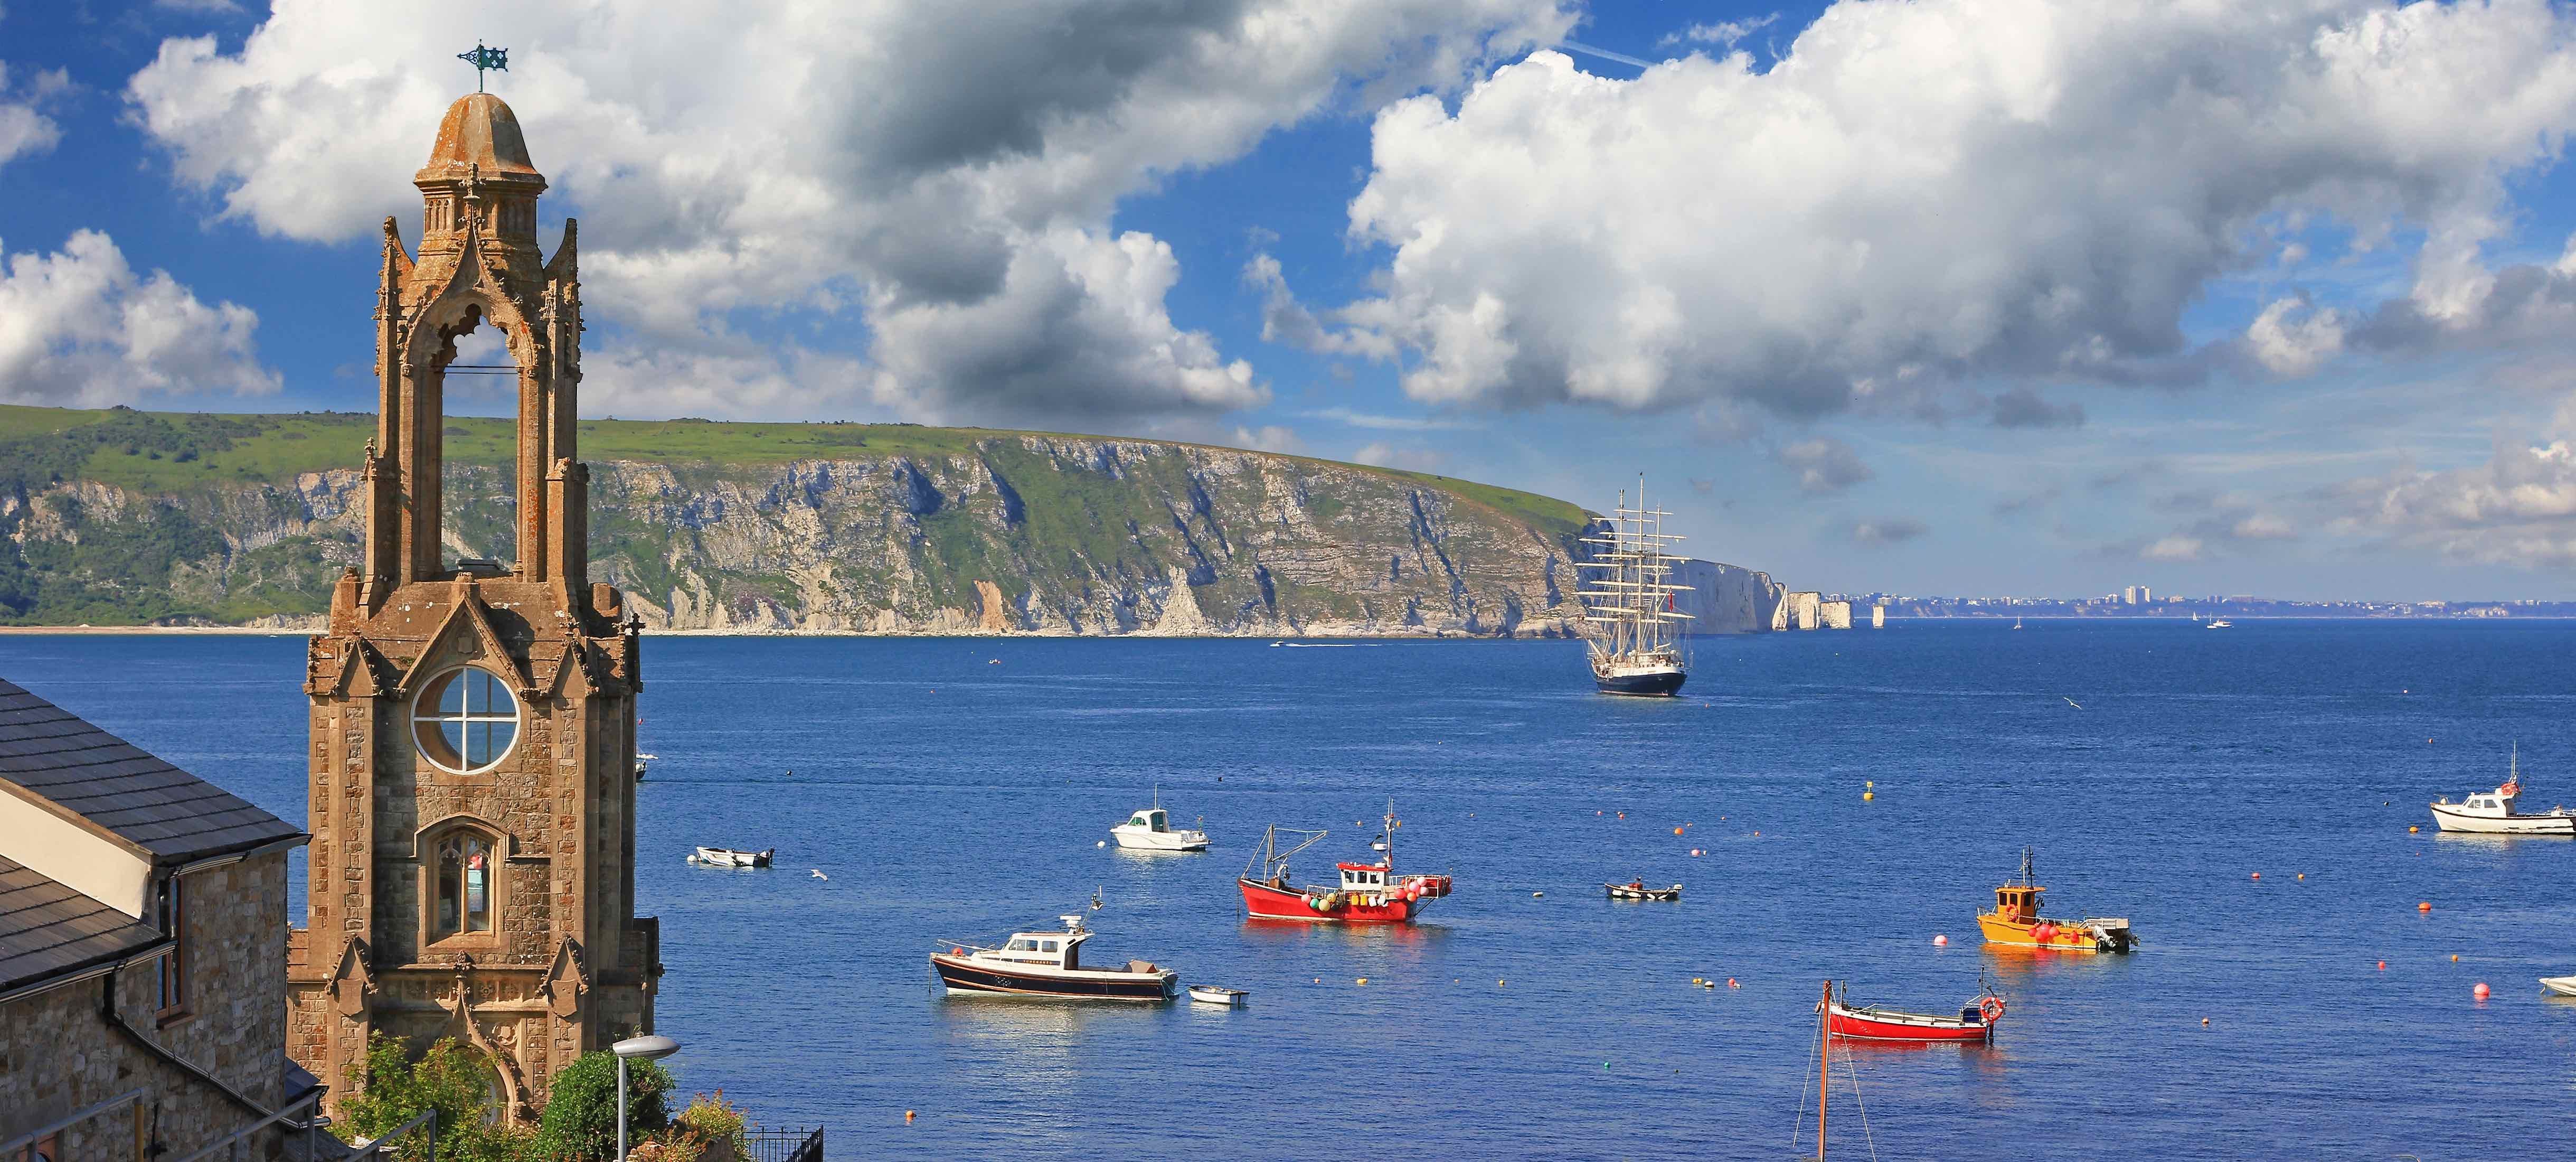 The idyllic coastal landscape of Swanage, Dorset - will you holiday here this year?